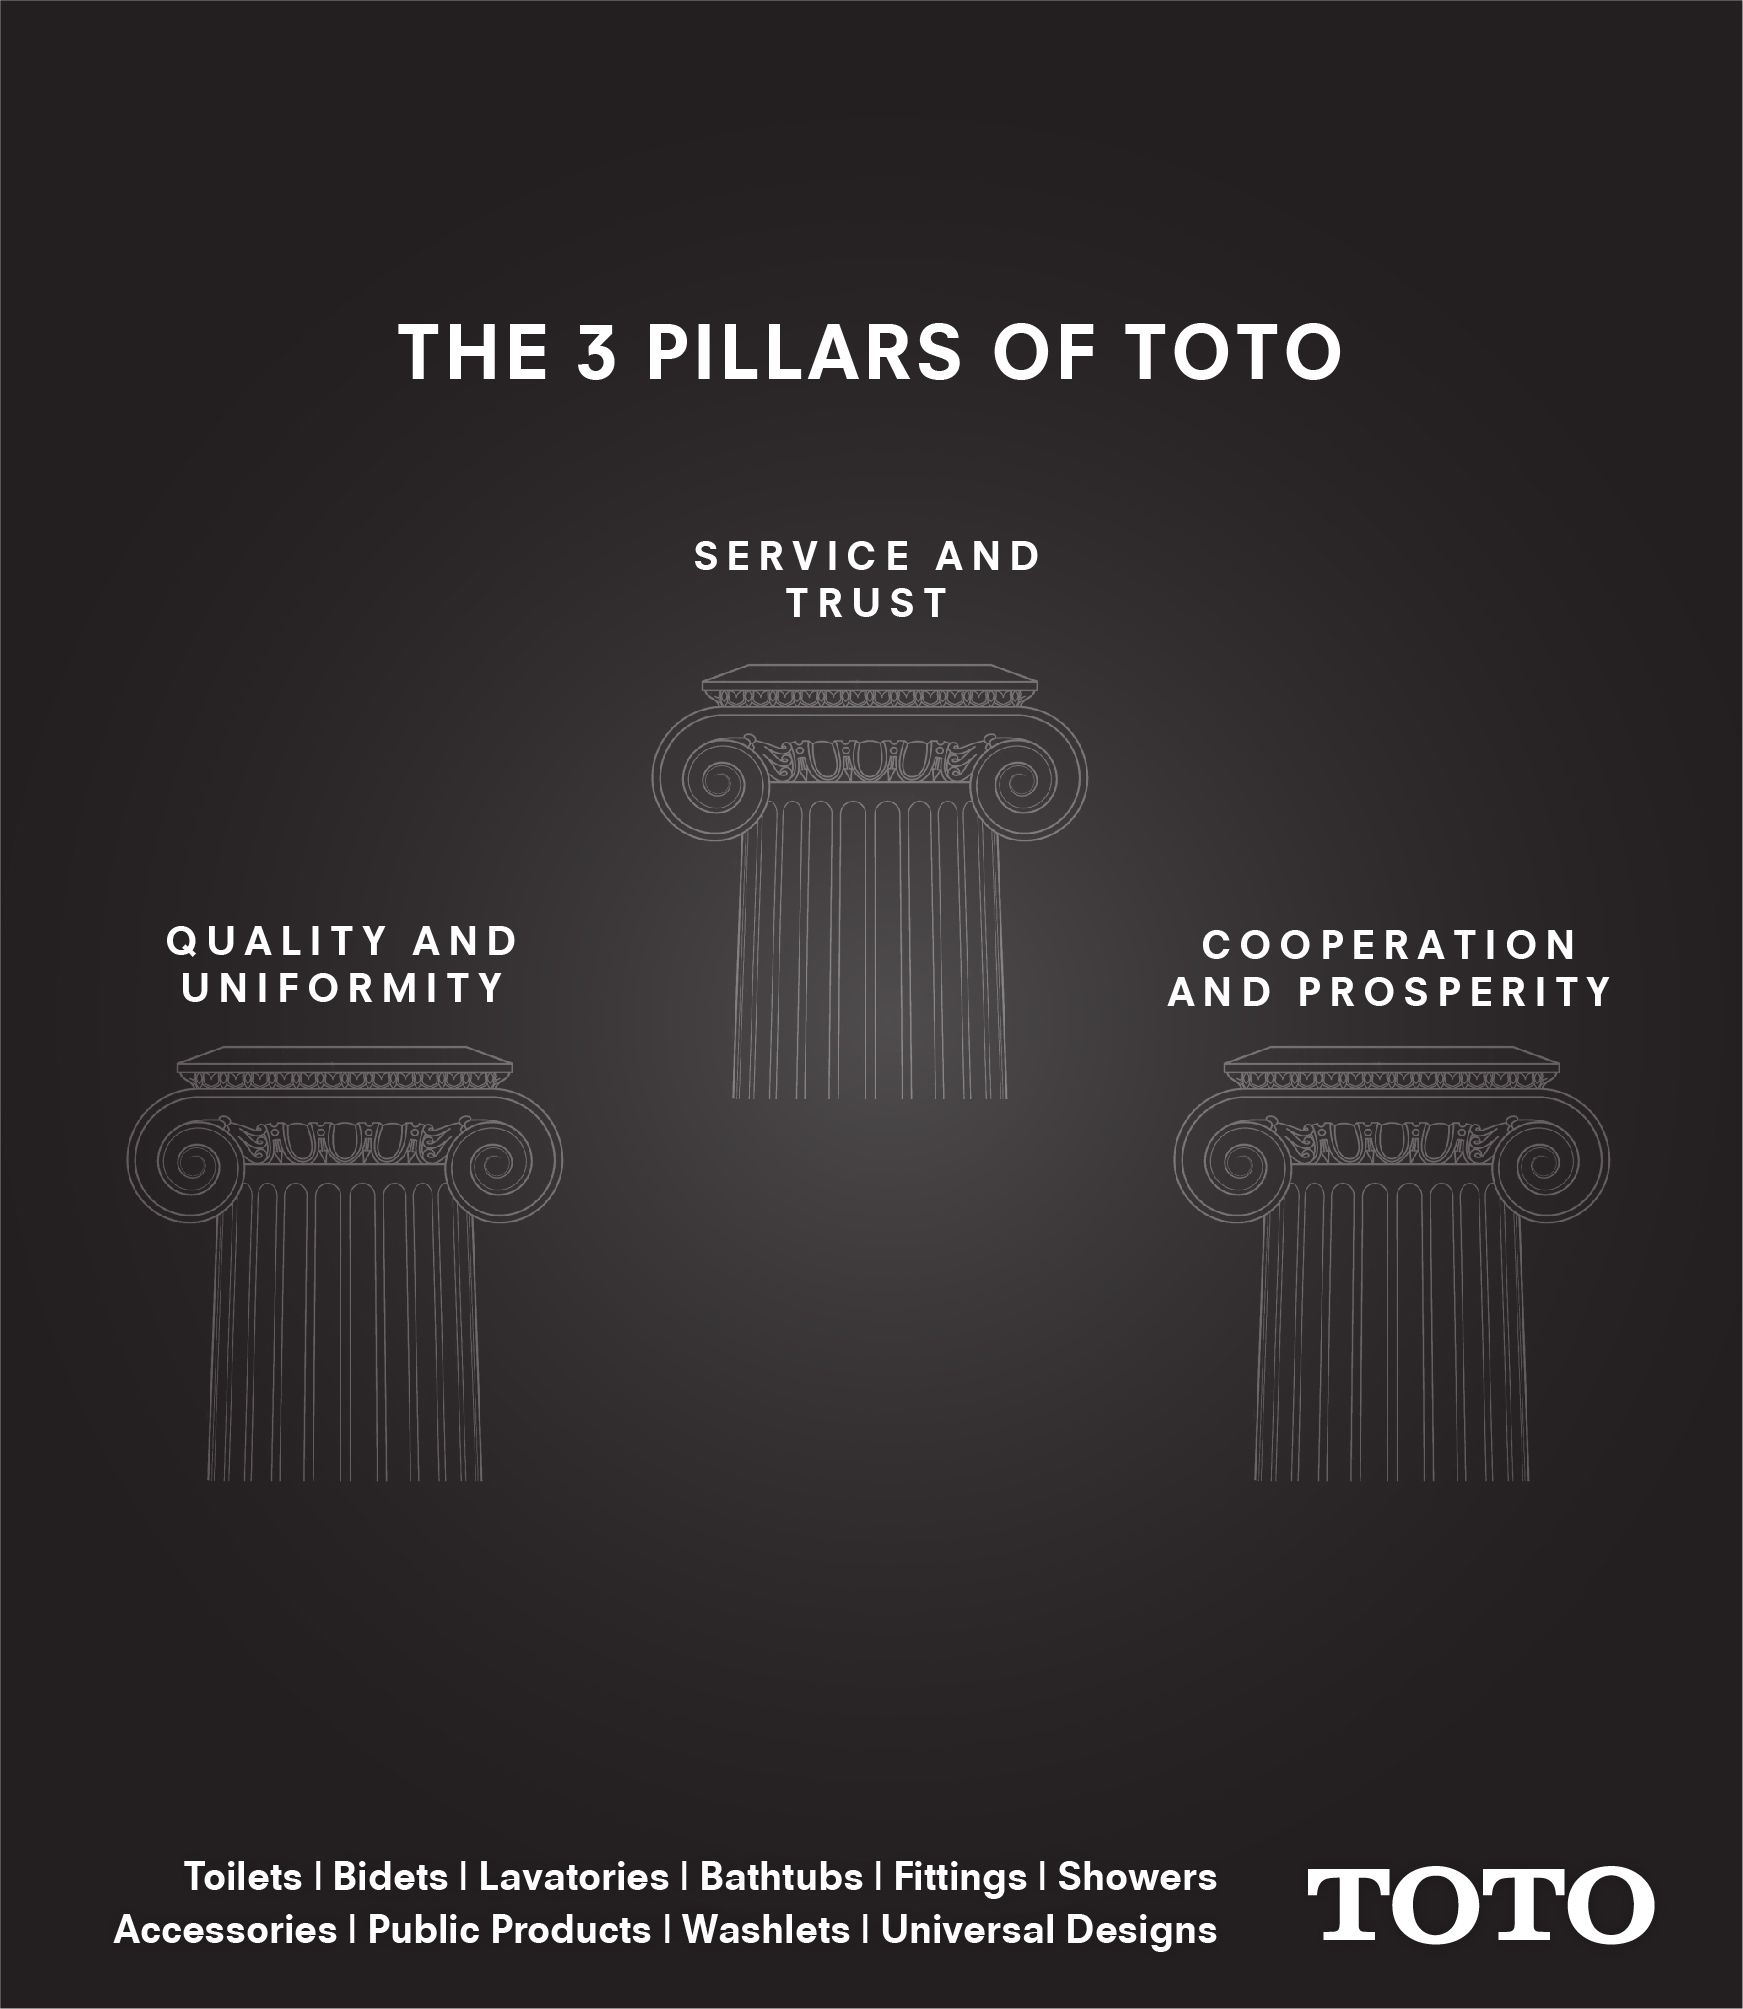 TOTO takes pride in improving everyone\'s quality of life through its ...